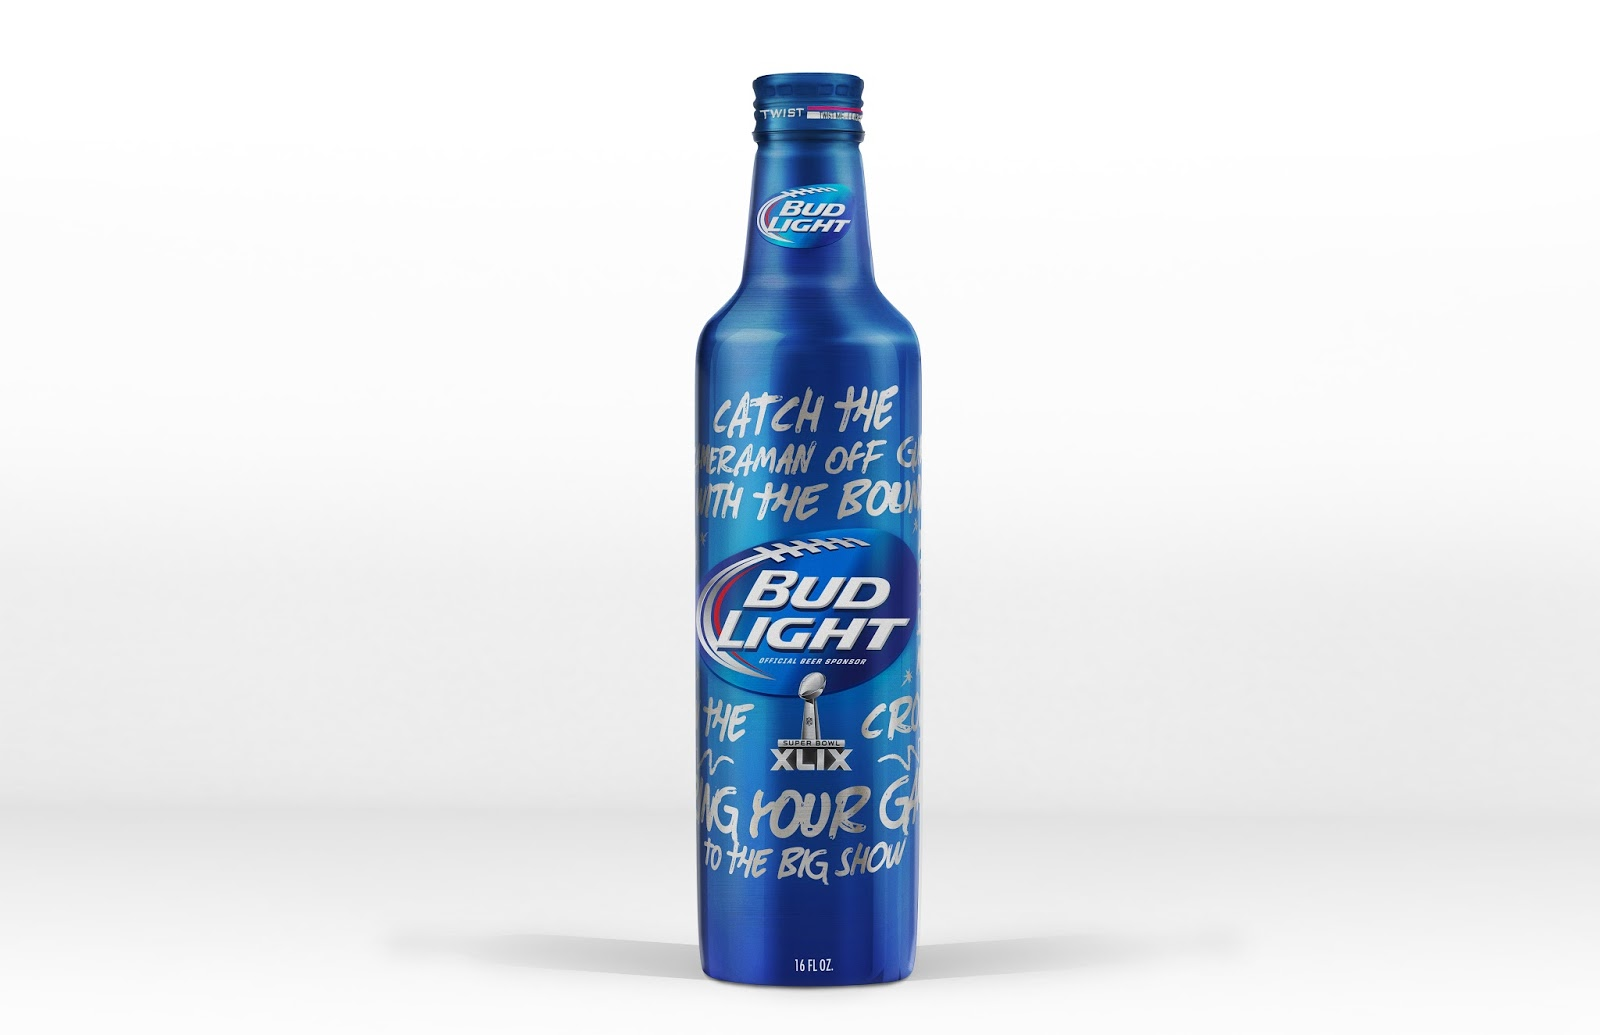 Bud Light Super Bowl XLIX Limited Edition Bottle On Packaging Of The World    Creative Package Design Gallery